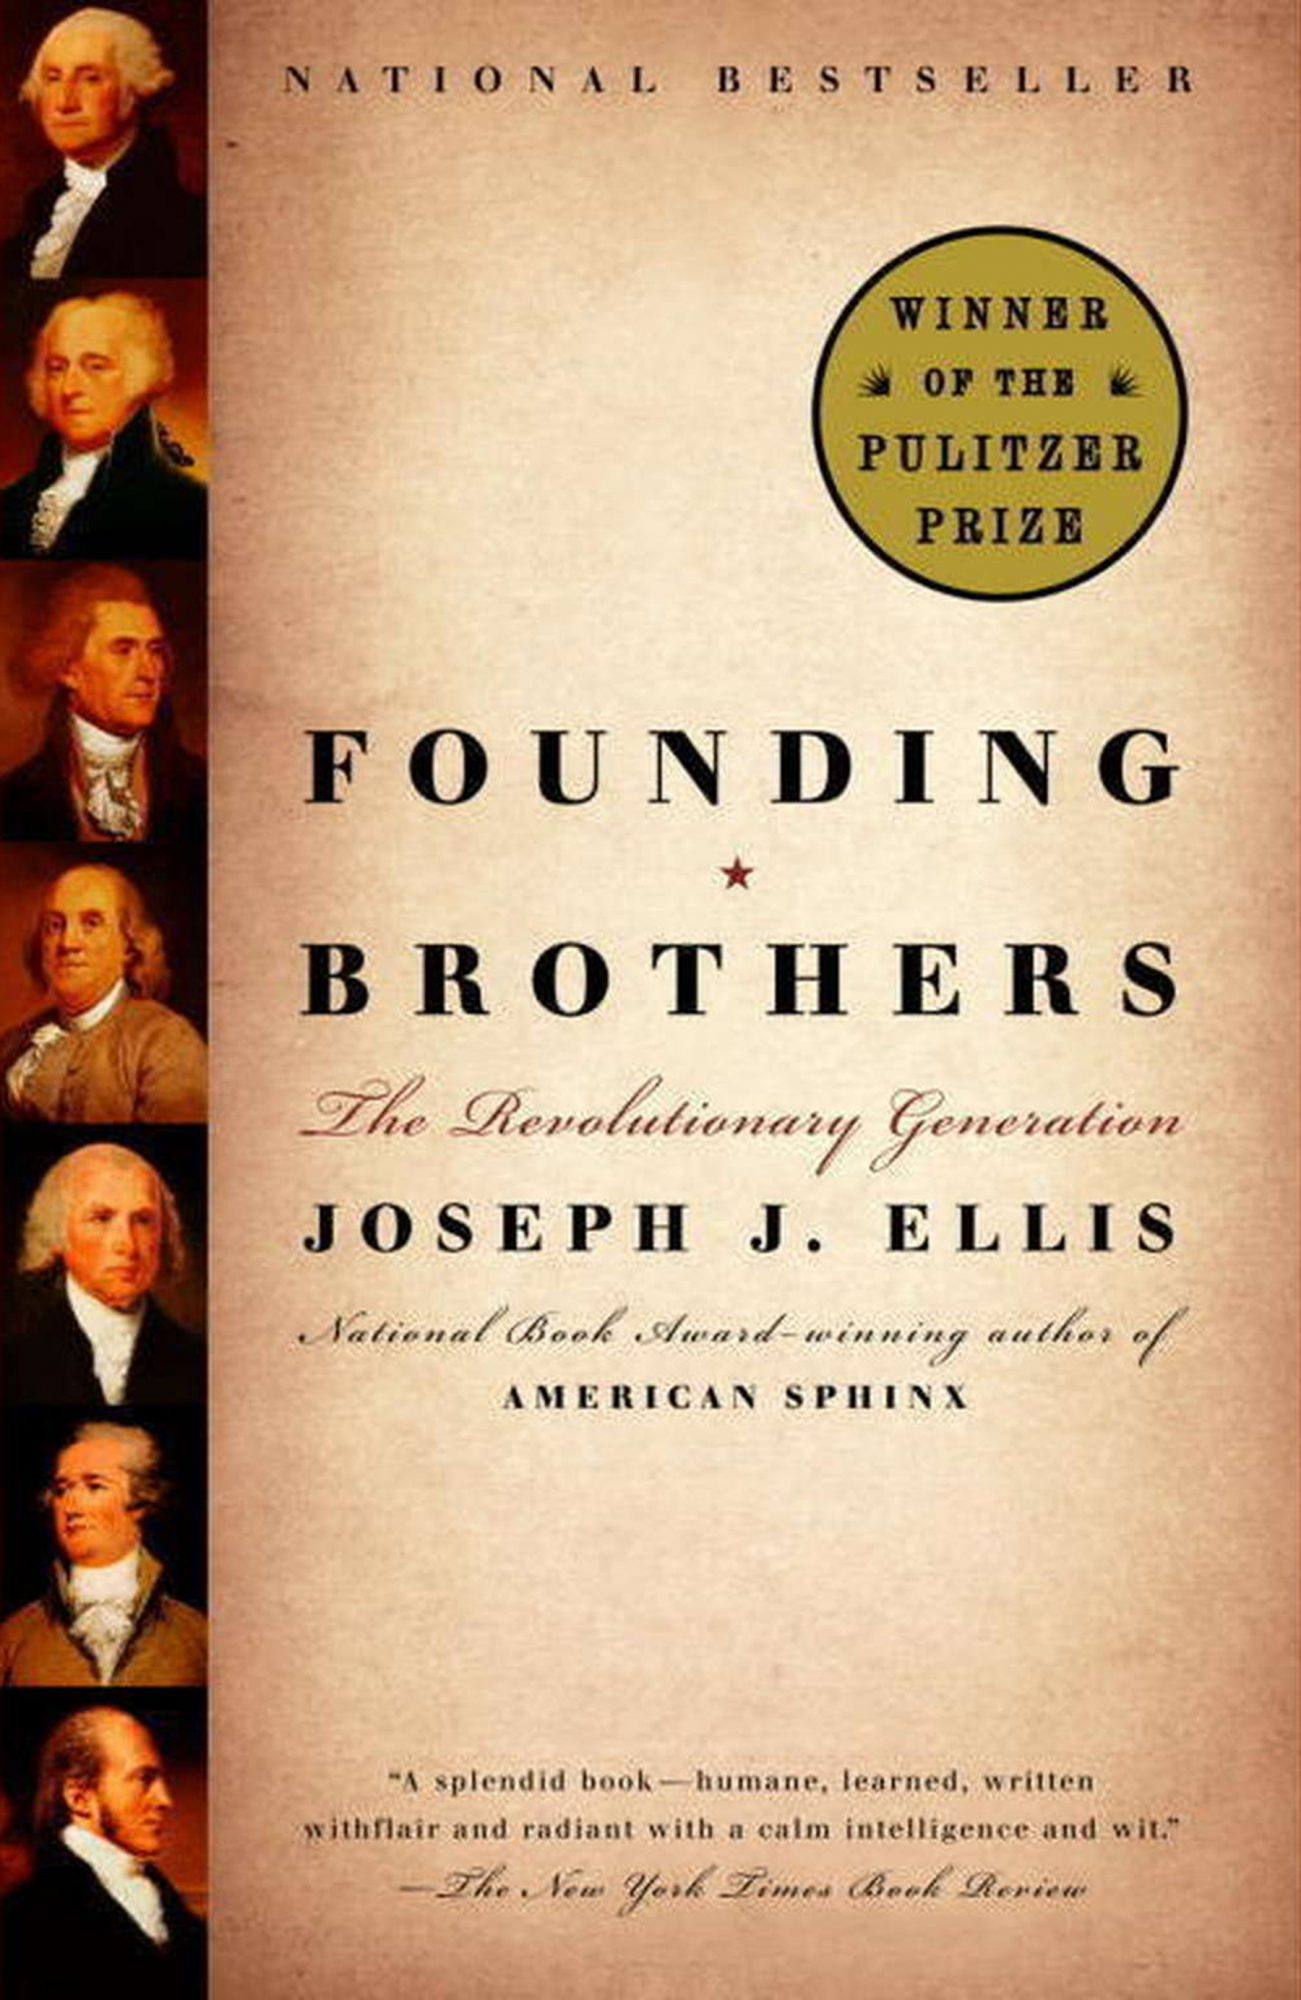 Joseph Ellis, Founding Brothers